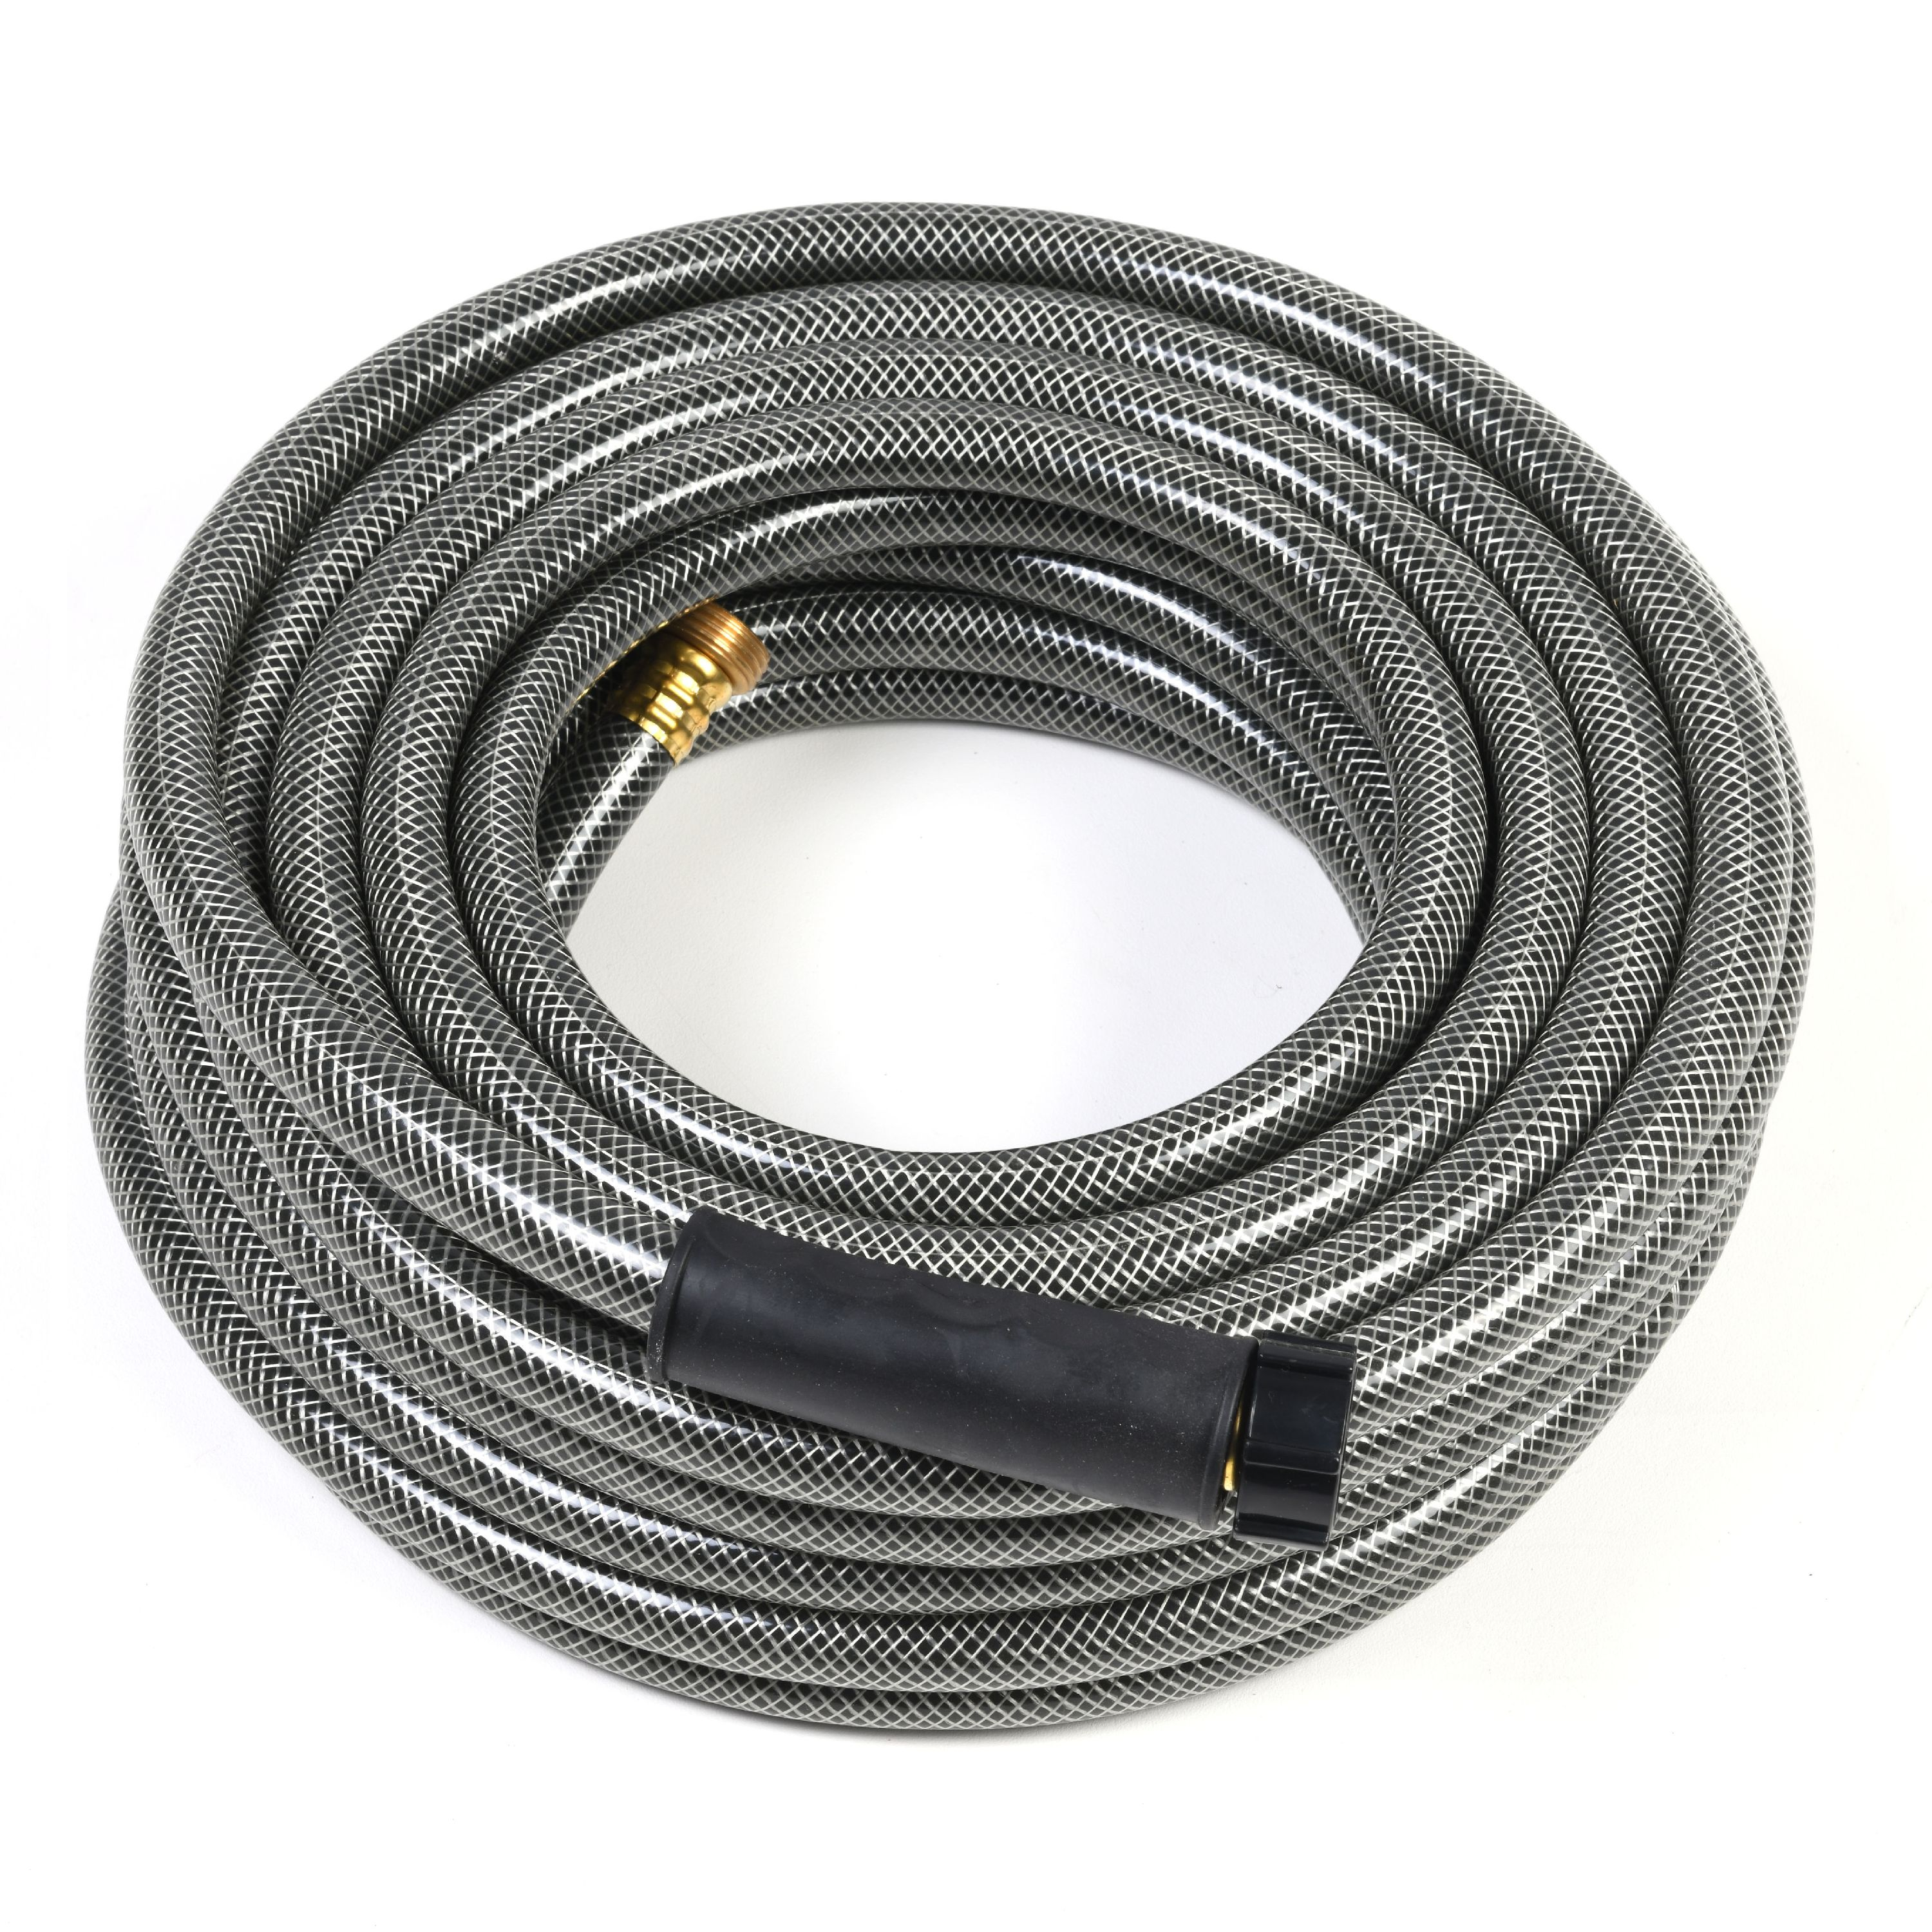 Auto Drive 50' Water Hose, Durable PVC Construction, Universal Coupler, Silver